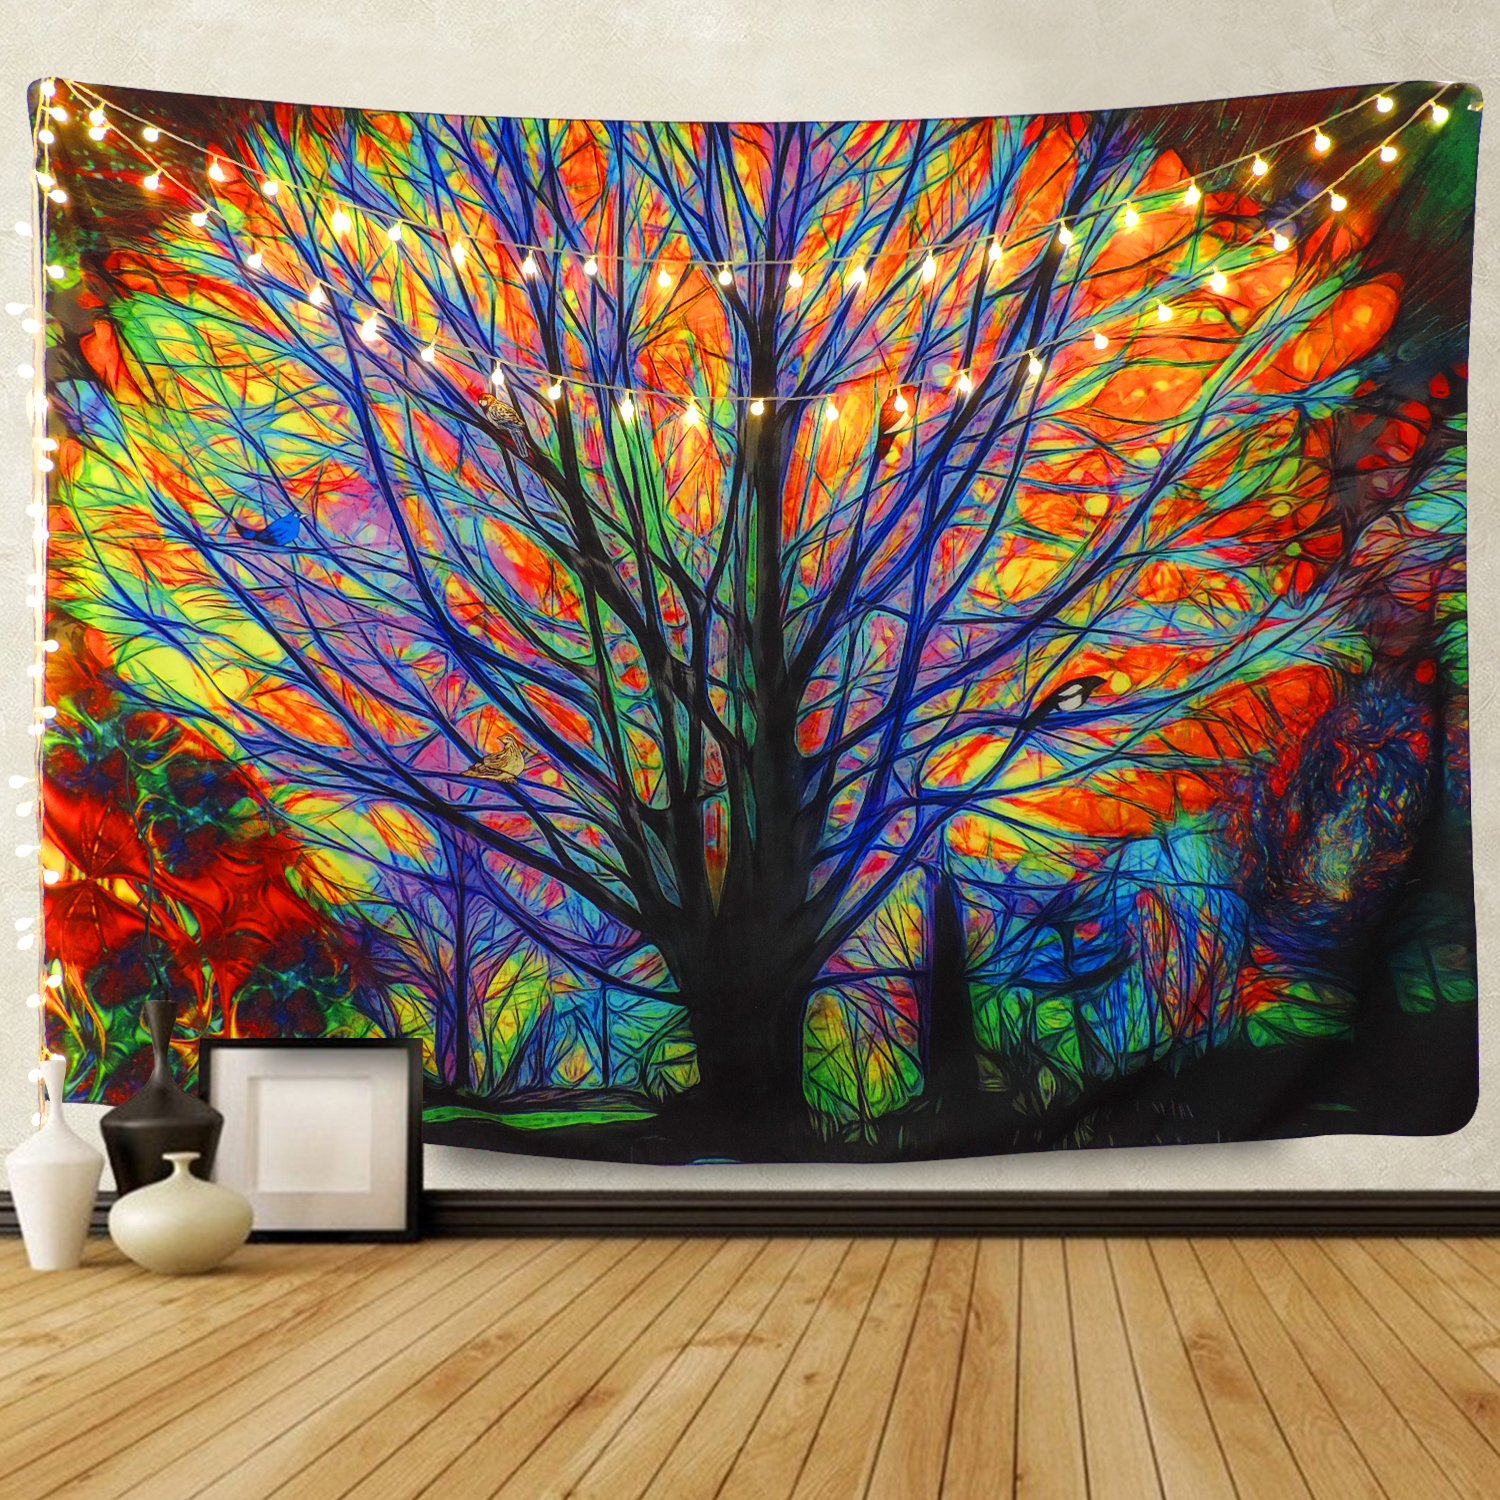 BLEUM CADE Colorful Tree Tapestry Wall Hanging Psychedelic Forest with Birds Wall Tapestry Bohemian Mandala Hippie Tapestry for Bedroom Living Room Dorm by BLEUM CADE